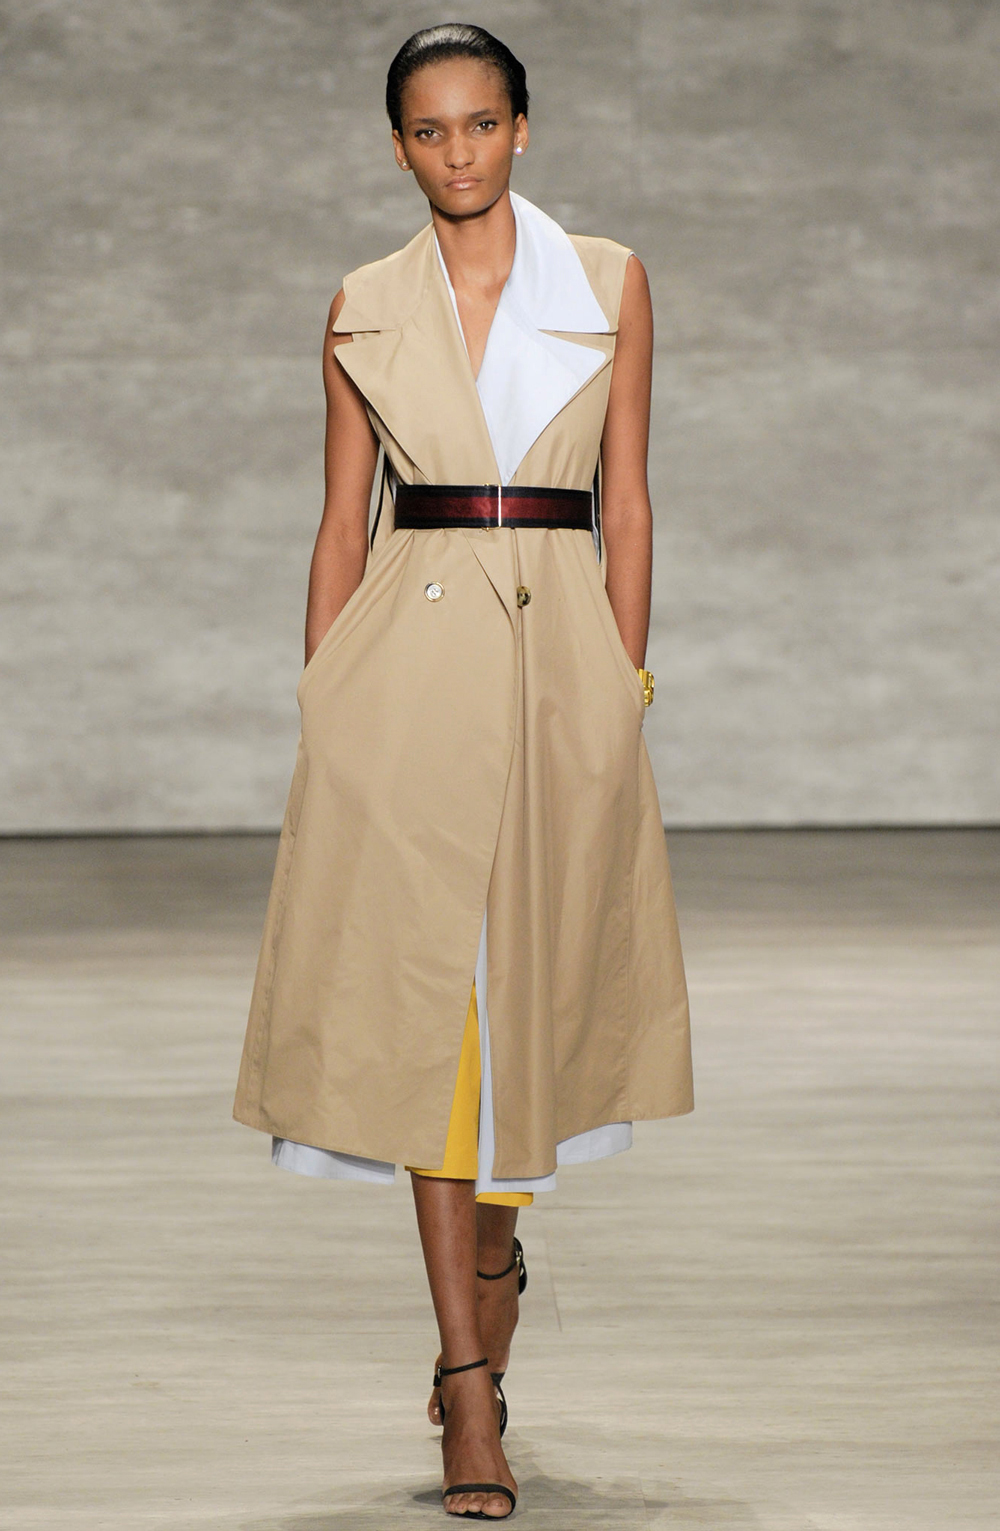 Designer look for less inspired by Tome Spring/Summer 2015 collection. Via Fashioned by Love / British fashion blog